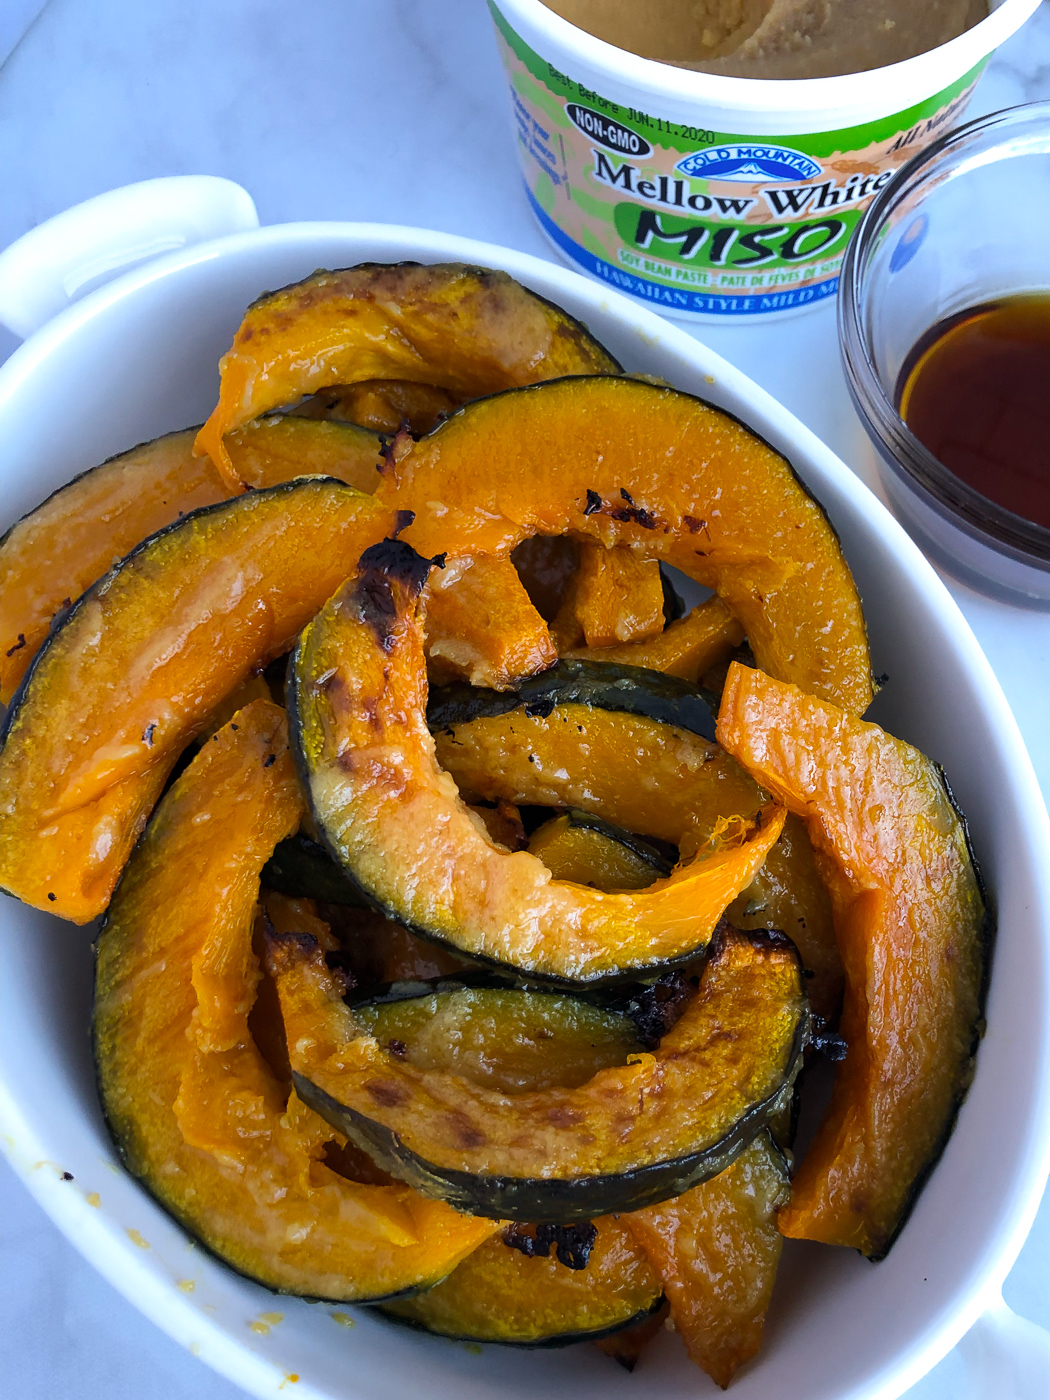 Miso Glazed Roasted Kabocha Squash